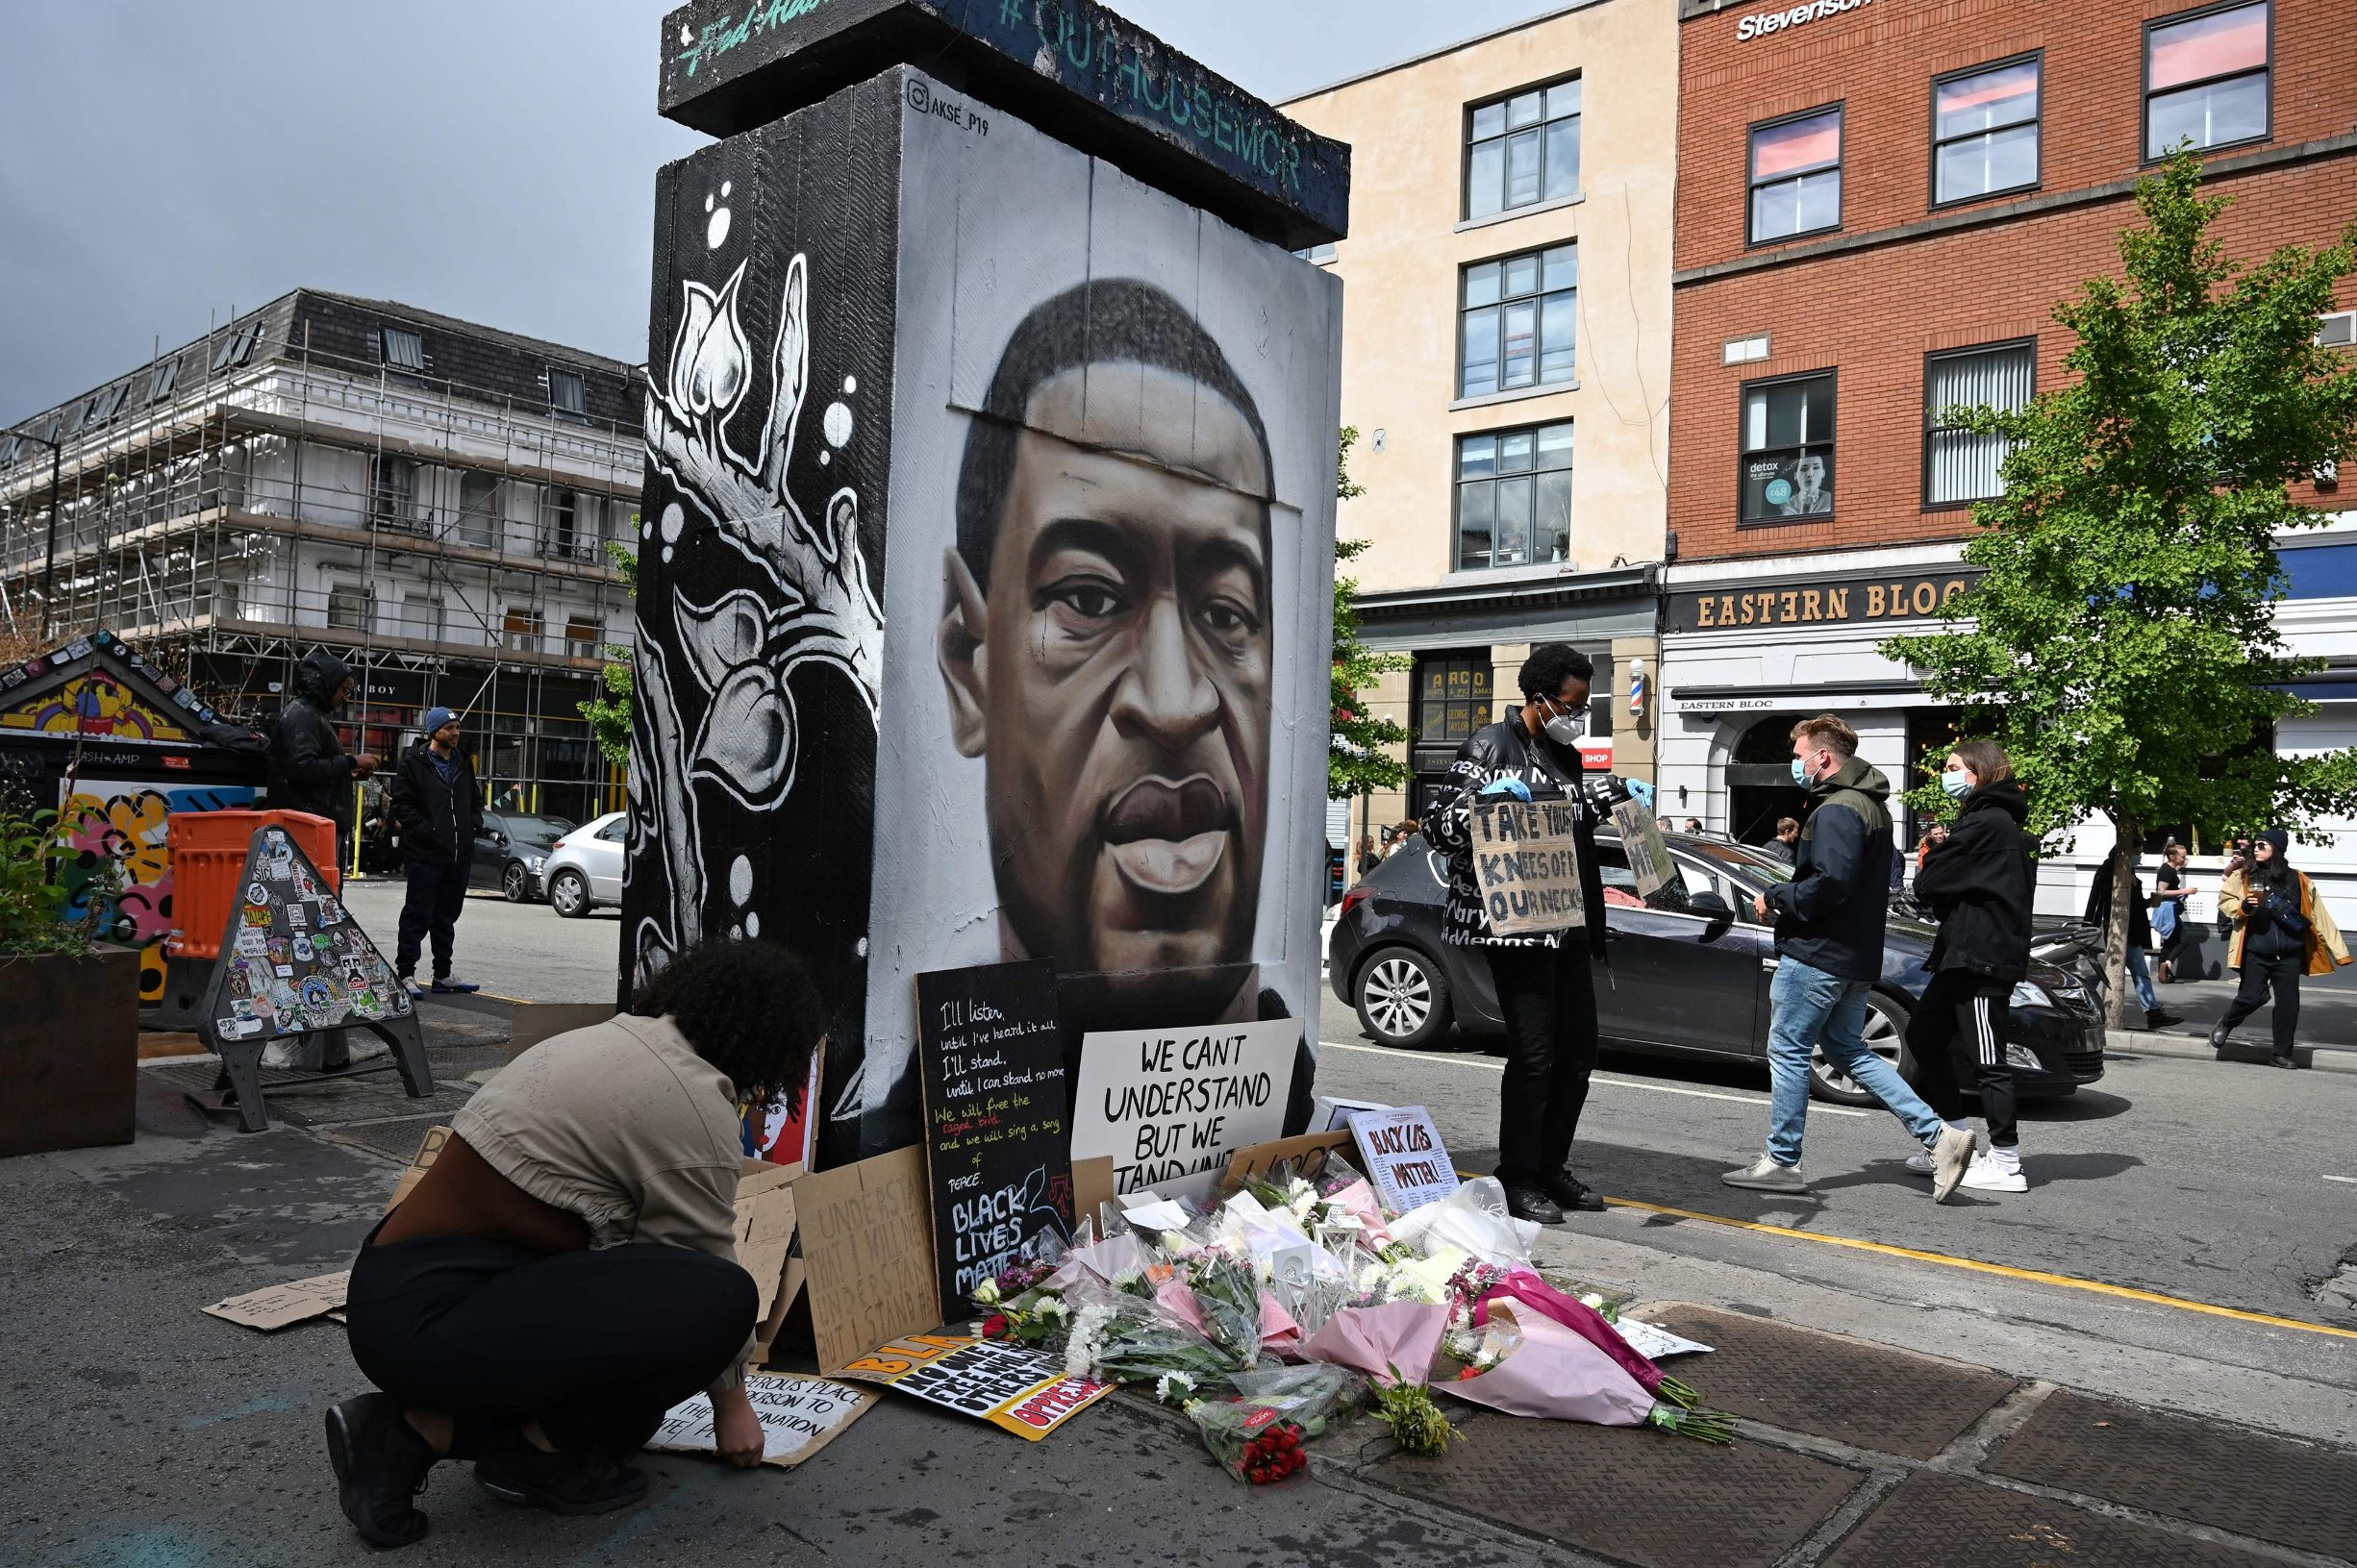 Protesters place their placards at the base of a mural of George Floyd, by street artist Akse, following a demonstration in Manchester, northern England, on June 6, 2020, to show solidarity with the Black Lives Matter movement in the wake of the killing of George Floyd, an unarmed black man who died after a police officer knelt on his neck in Minneapolis. - The United States braced Friday for massive weekend protests against racism and police brutality, as outrage soared over the latest law enforcement abuses against demonstrators that were caught on camera. With protests over last week's police killing of George Floyd, an unarmed black man, surging into a second weekend, President Donald Trump sparked fresh controversy by saying it was a